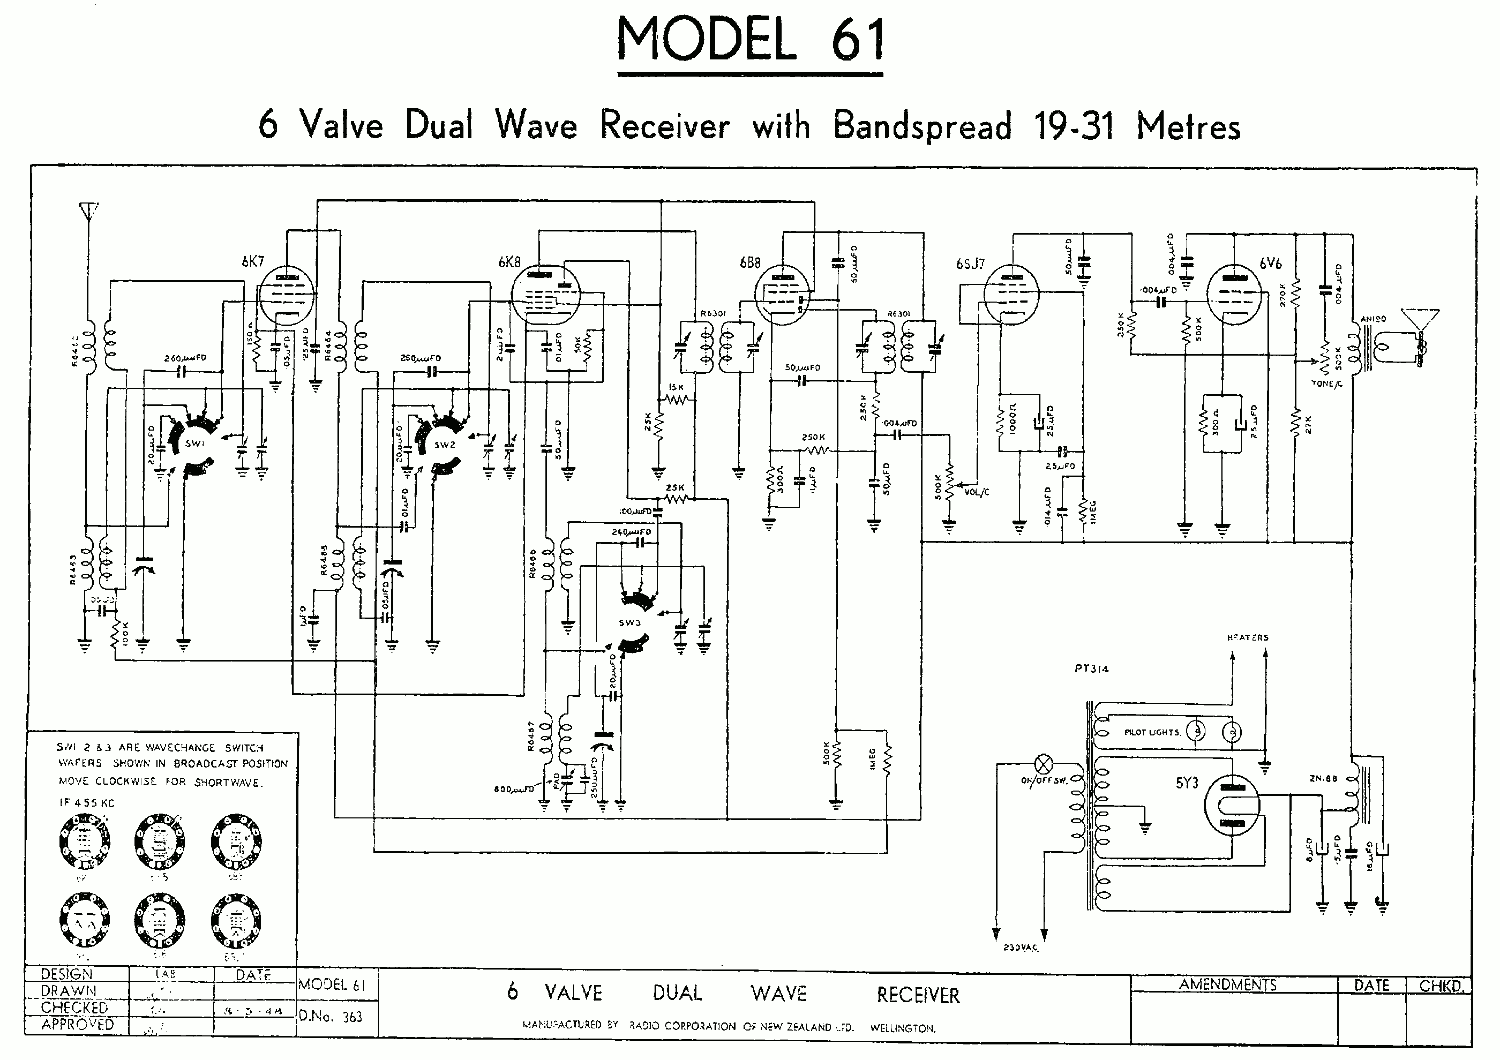 1947 Columbus & Courtenay model 61 Schematic